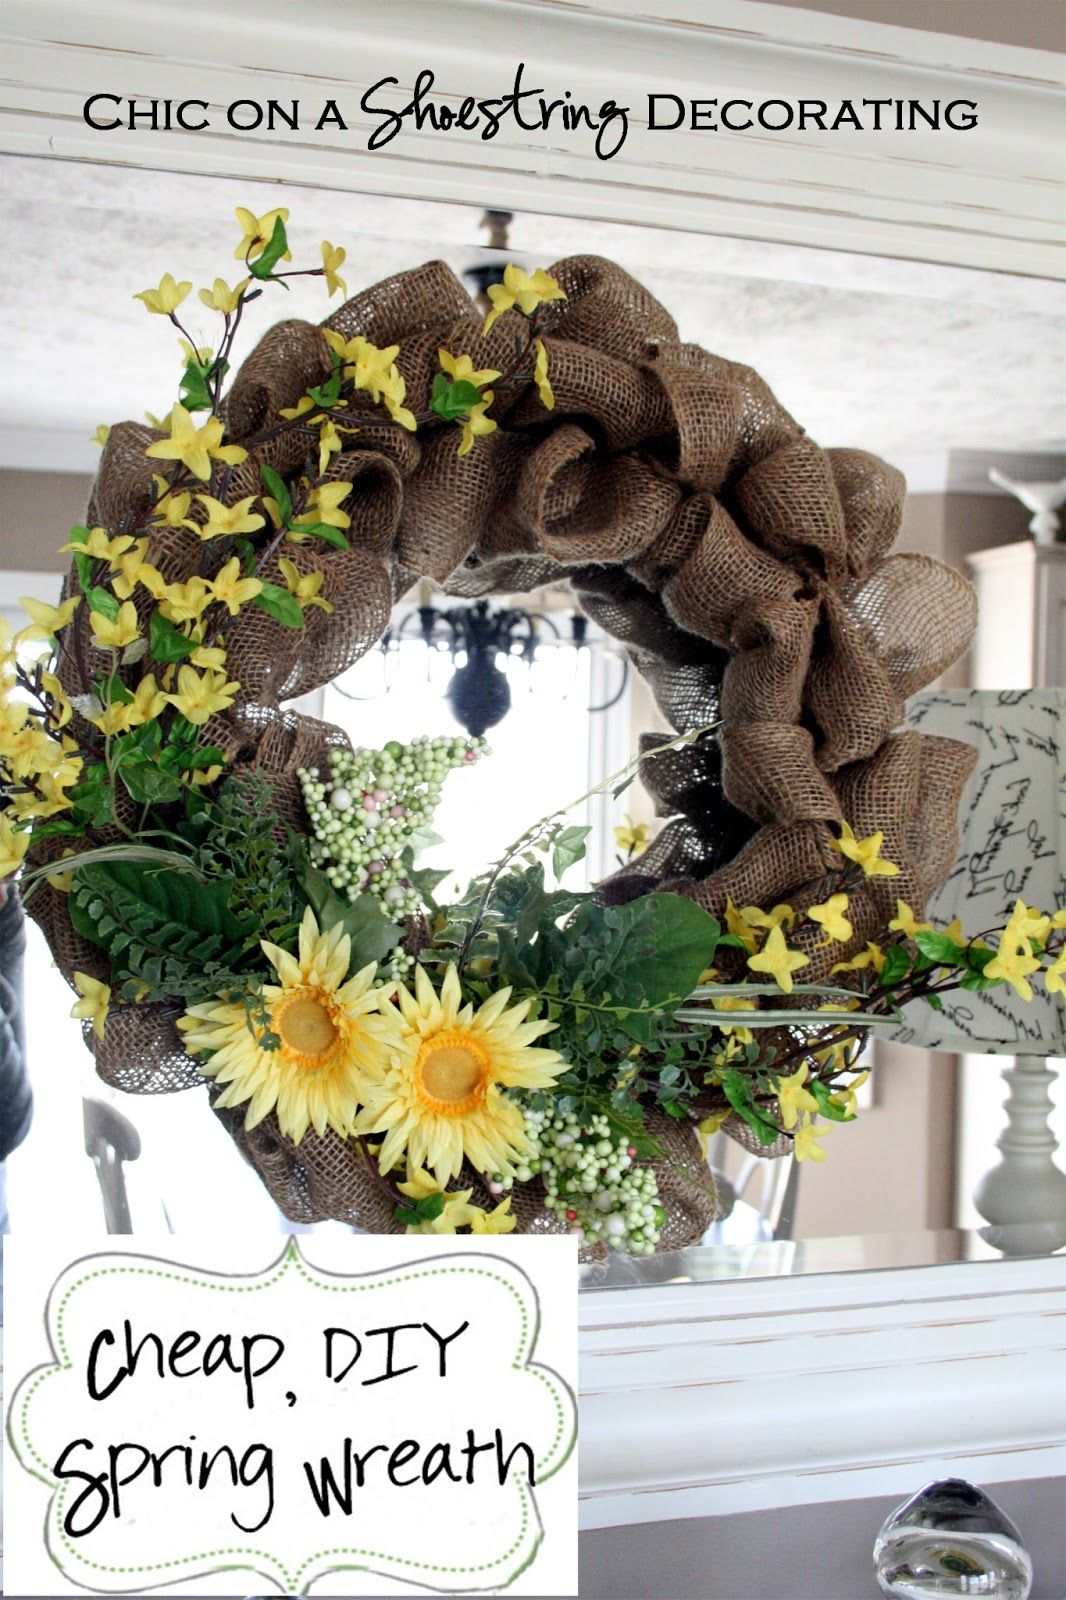 Chic on a shoestring decorating cheap diy spring wreath tutorial diy burlap spring wreath tutorial chic on a shoestring decorating izmirmasajfo Choice Image